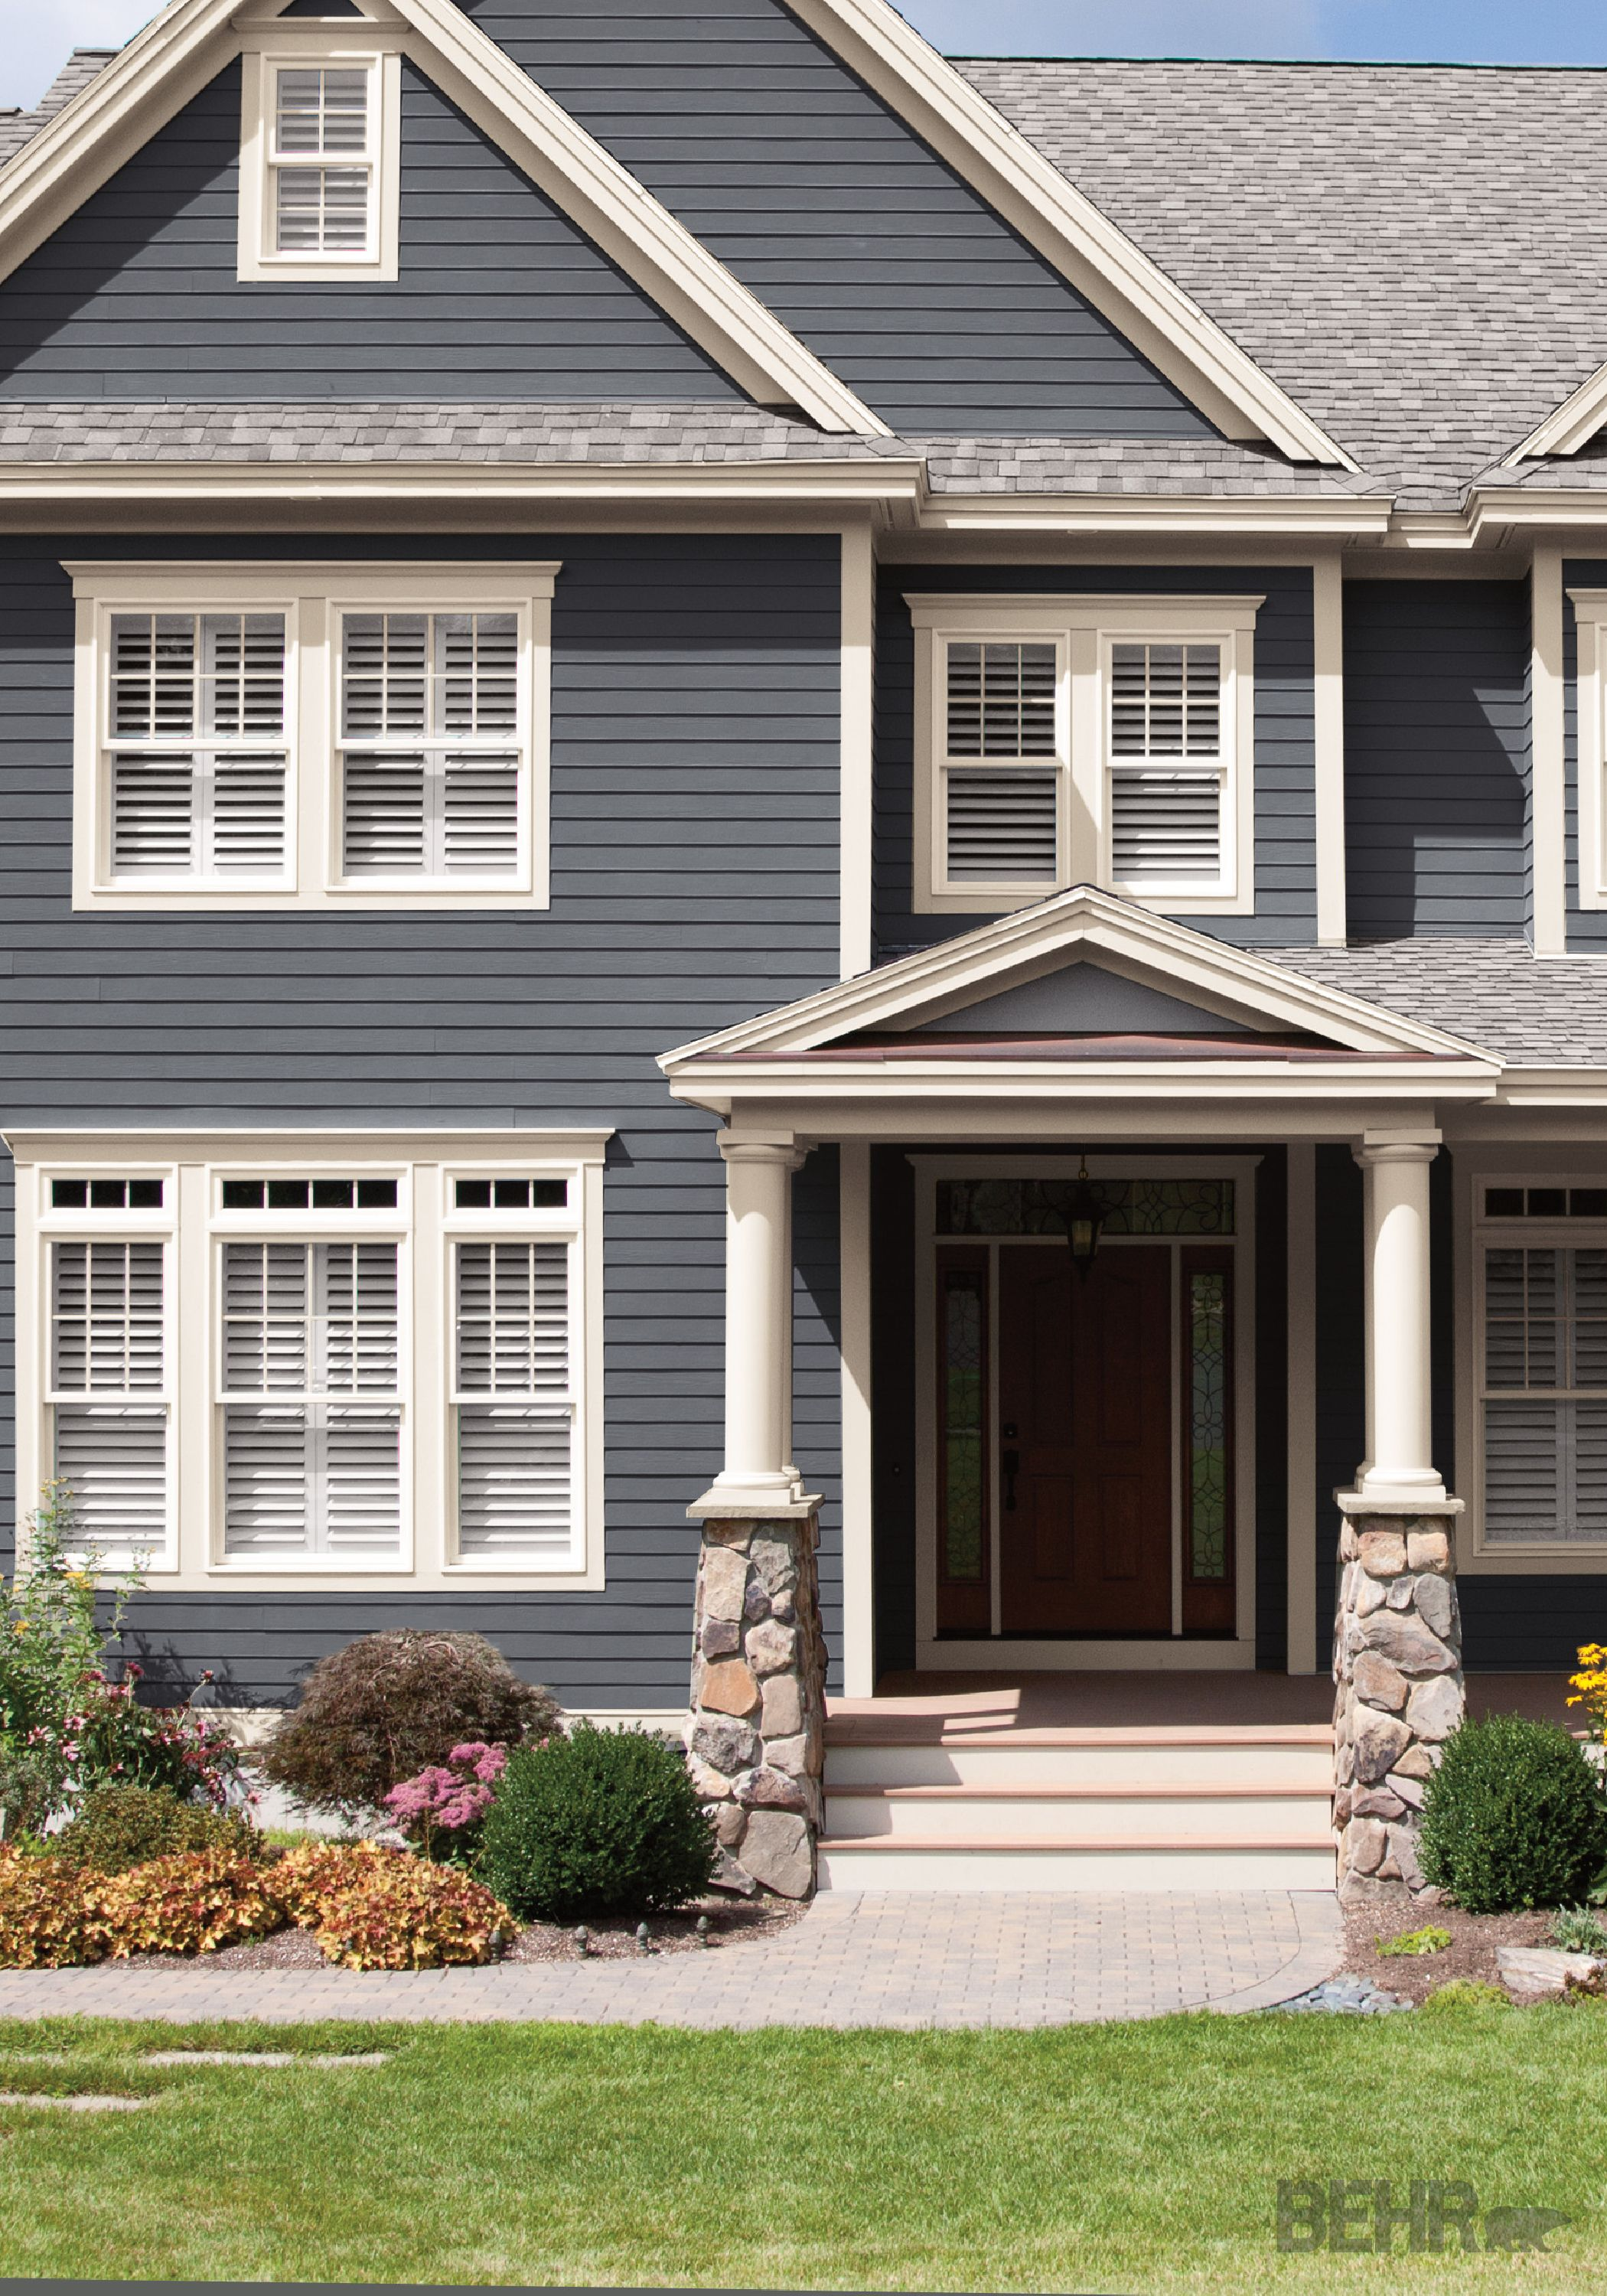 Exterior Paint Colors You Want A Fresh New Look For Exterior Of Your Home Get Inspi Gray House Exterior Exterior Paint Colors For House House Paint Exterior